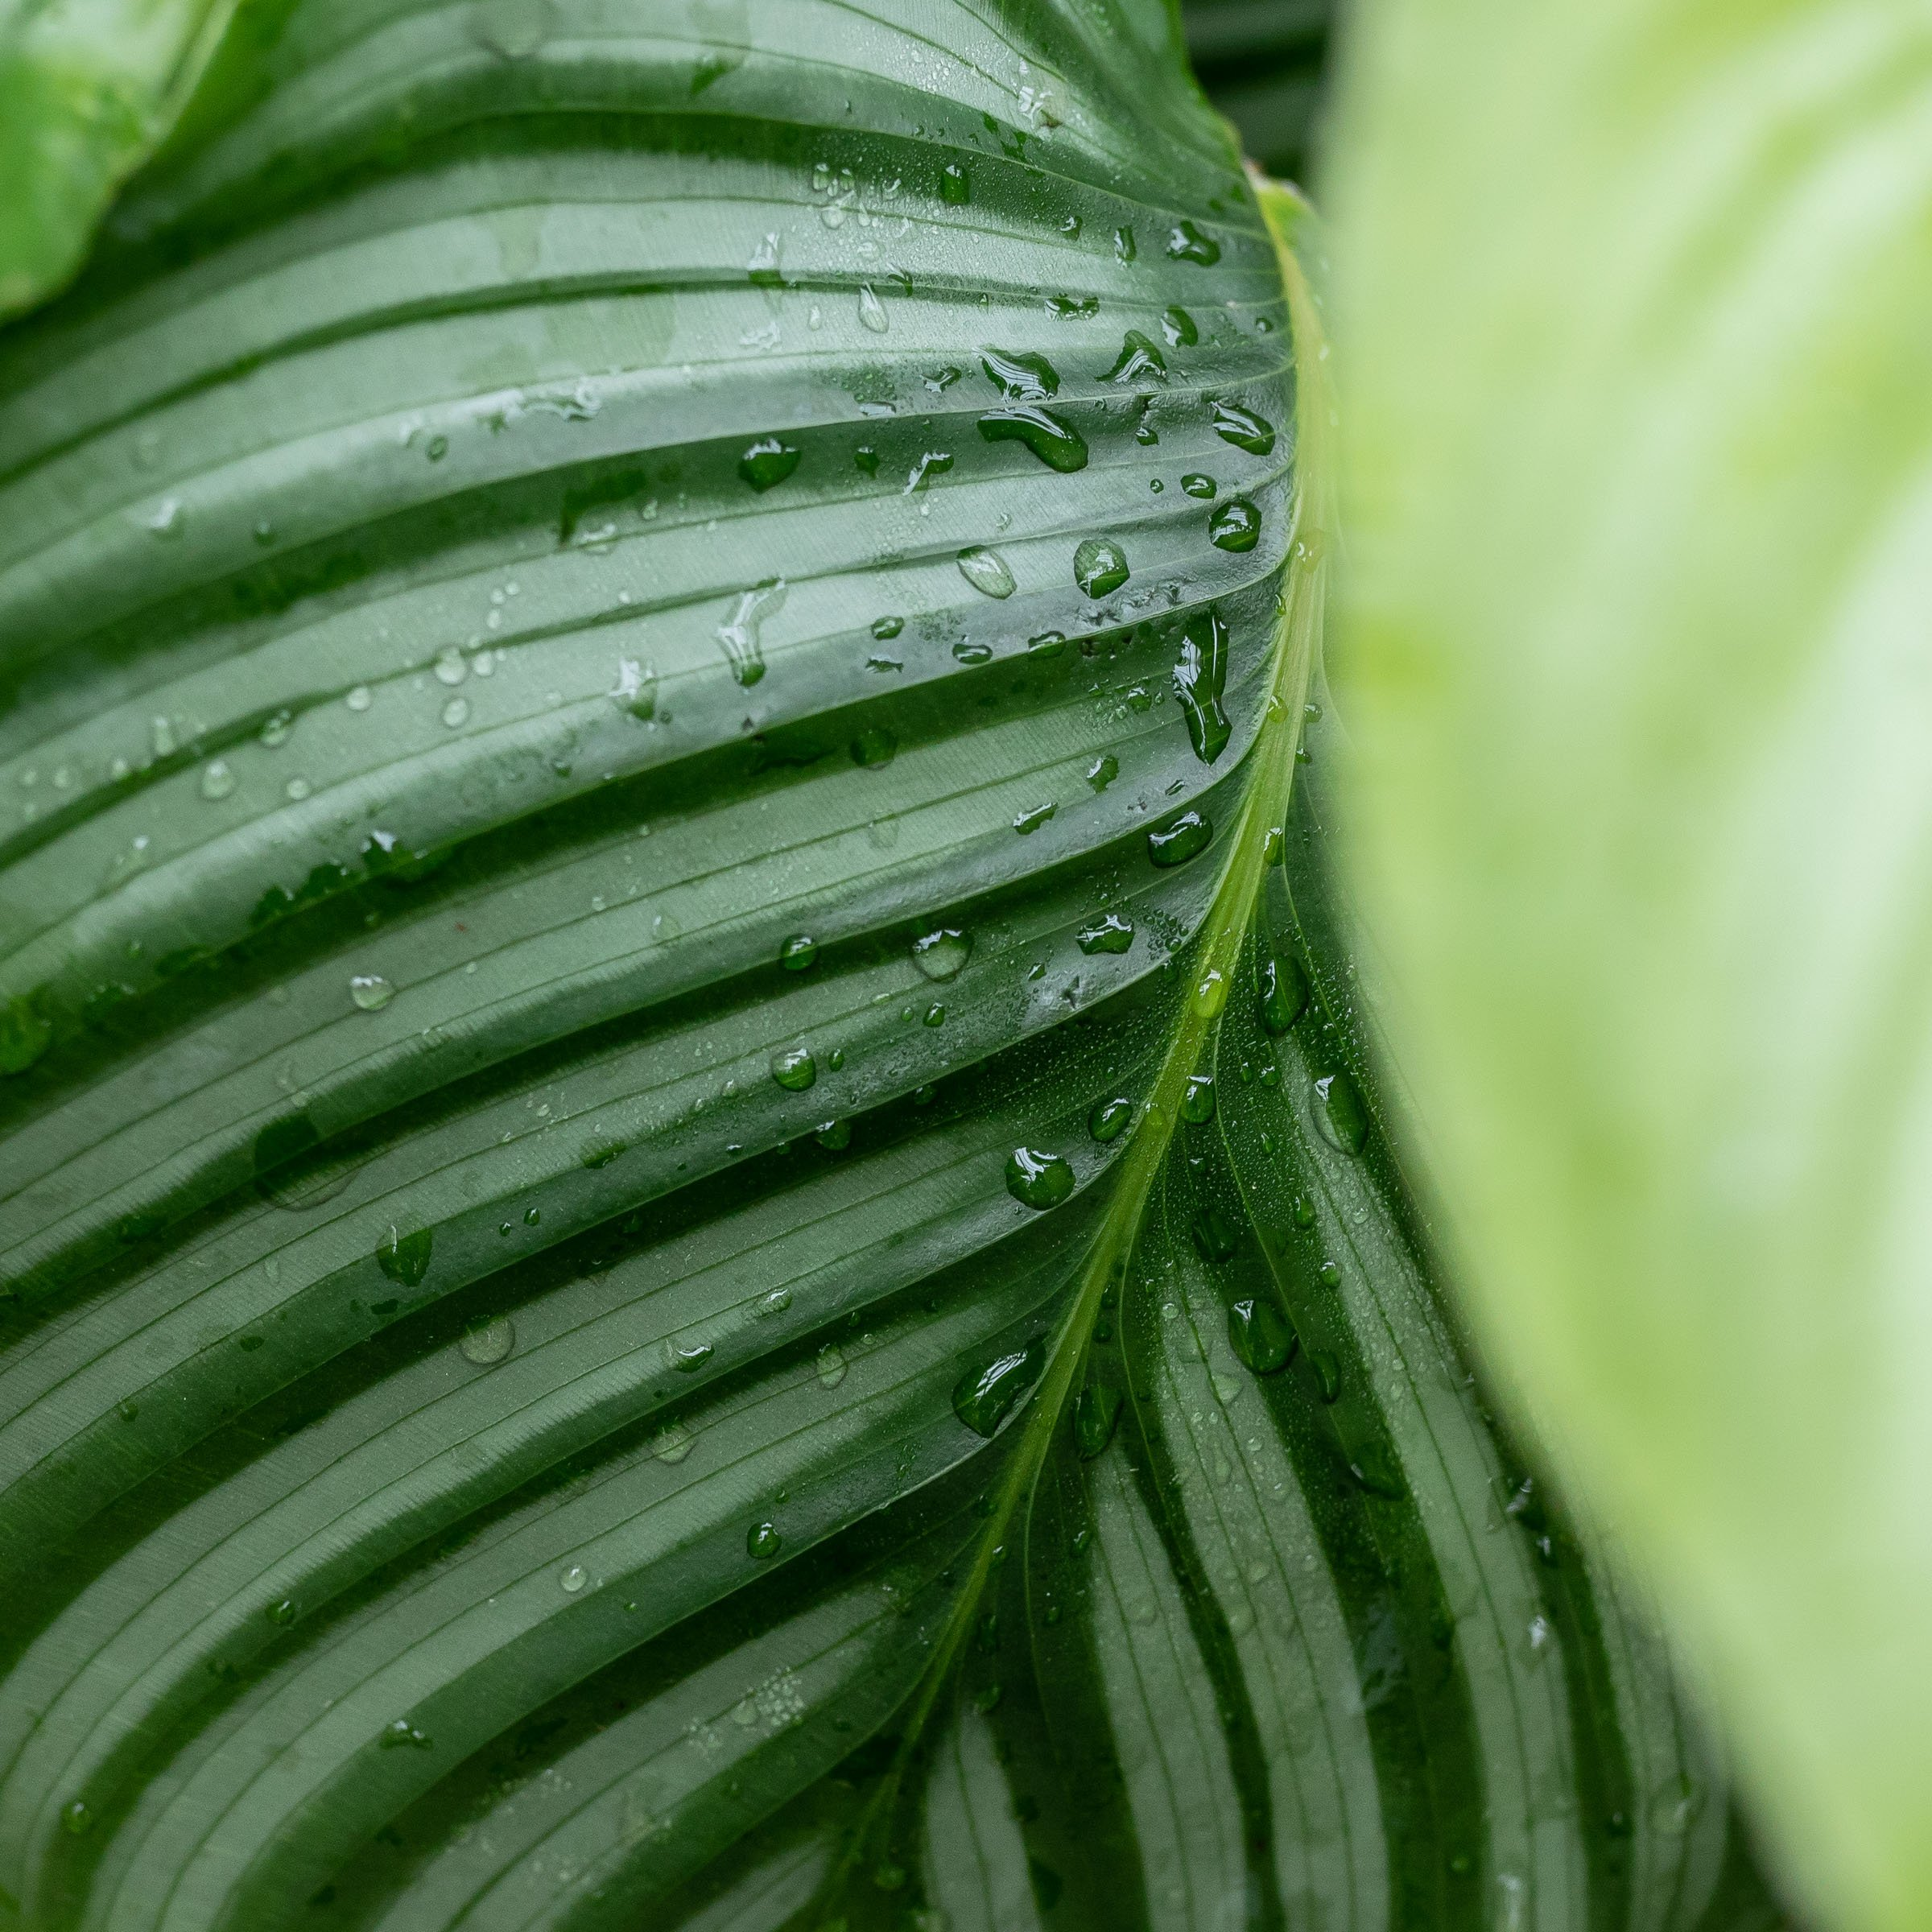 Plant care tips by Leaf Envy : Top 5 watering tips for indoor plants